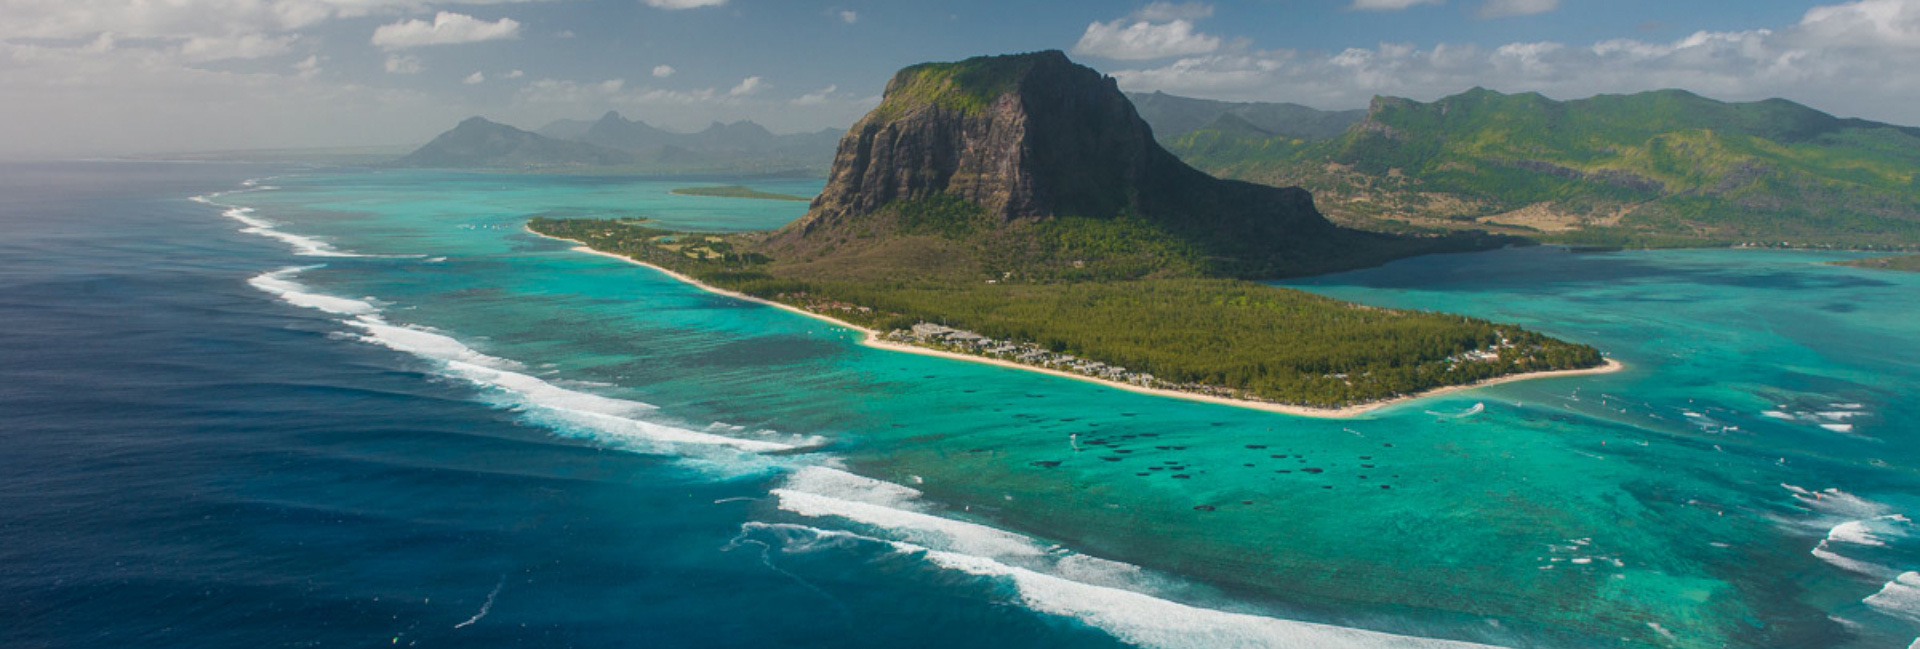 le morne branbant and beach aerial view